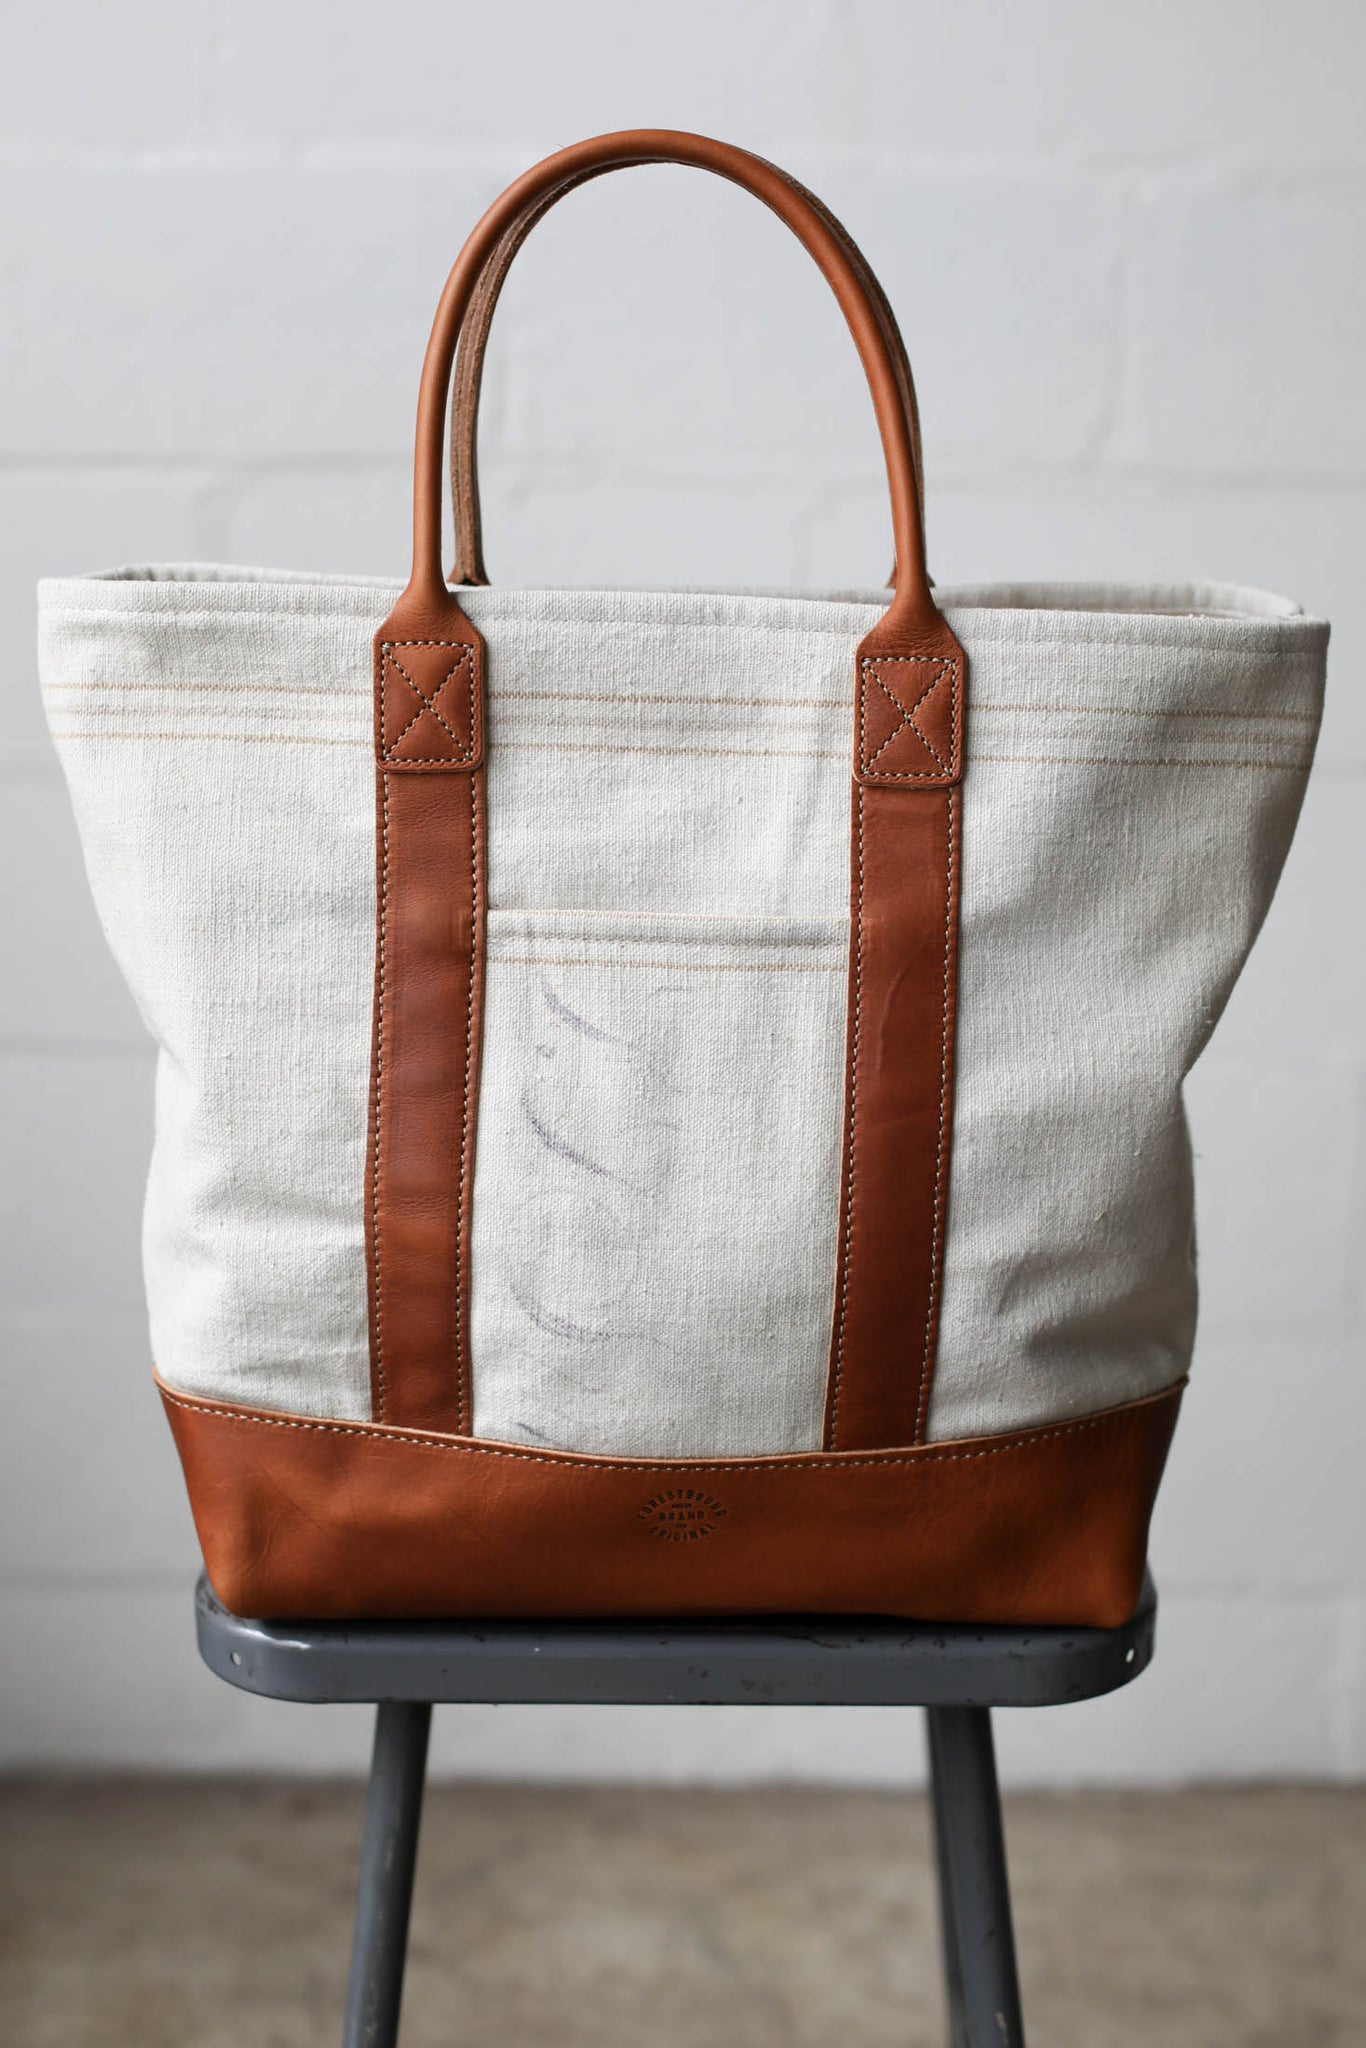 1940's era Salvaged Feed Sack Tote Bag